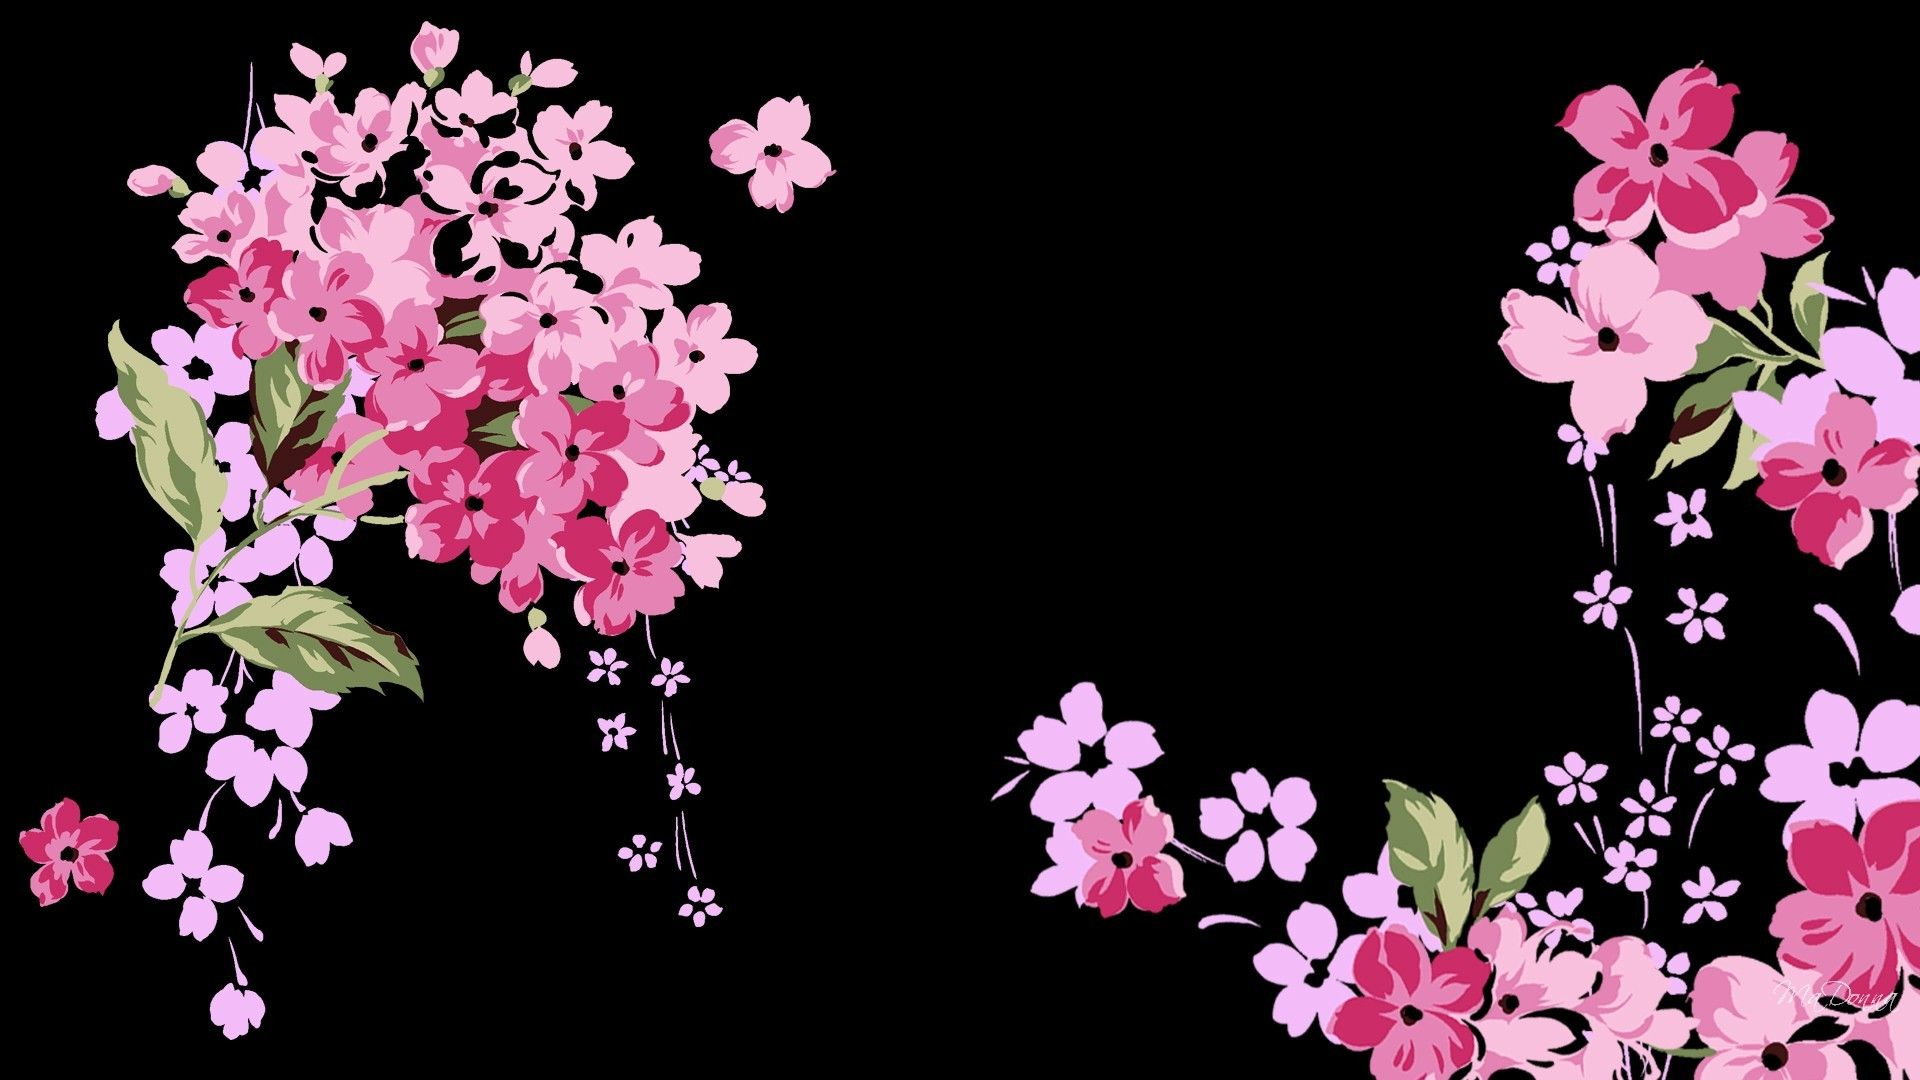 30 Black and Pink Floral Wallpapers   Download at WallpaperBro 1920x1080